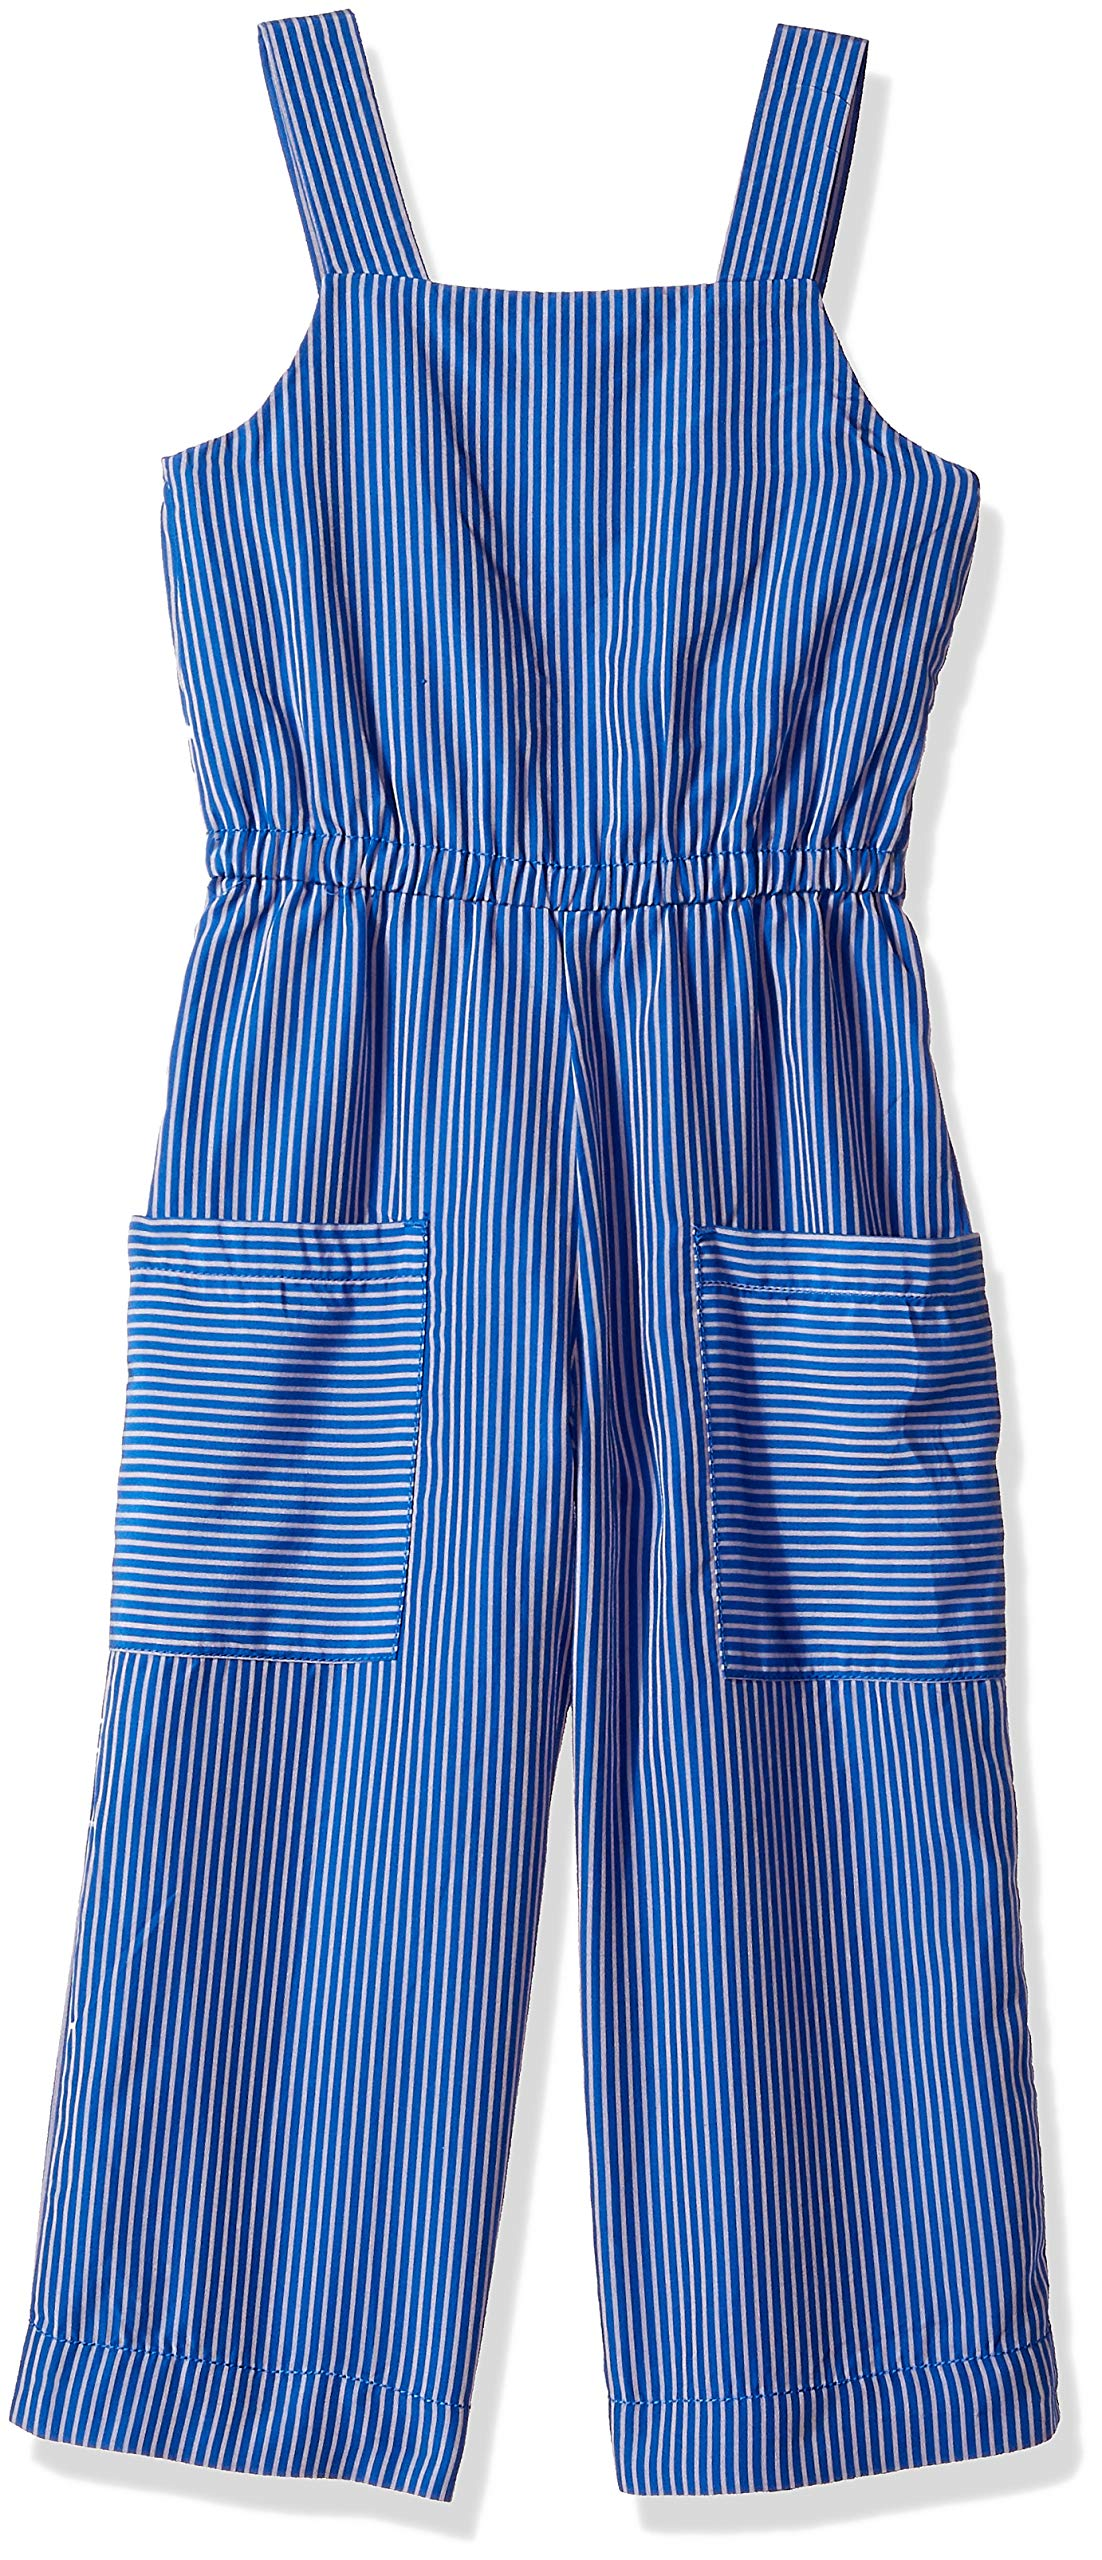 Gymboree Girls' Big Casual Knit Romper, Electric Blue, 5 by Gymboree (Image #1)